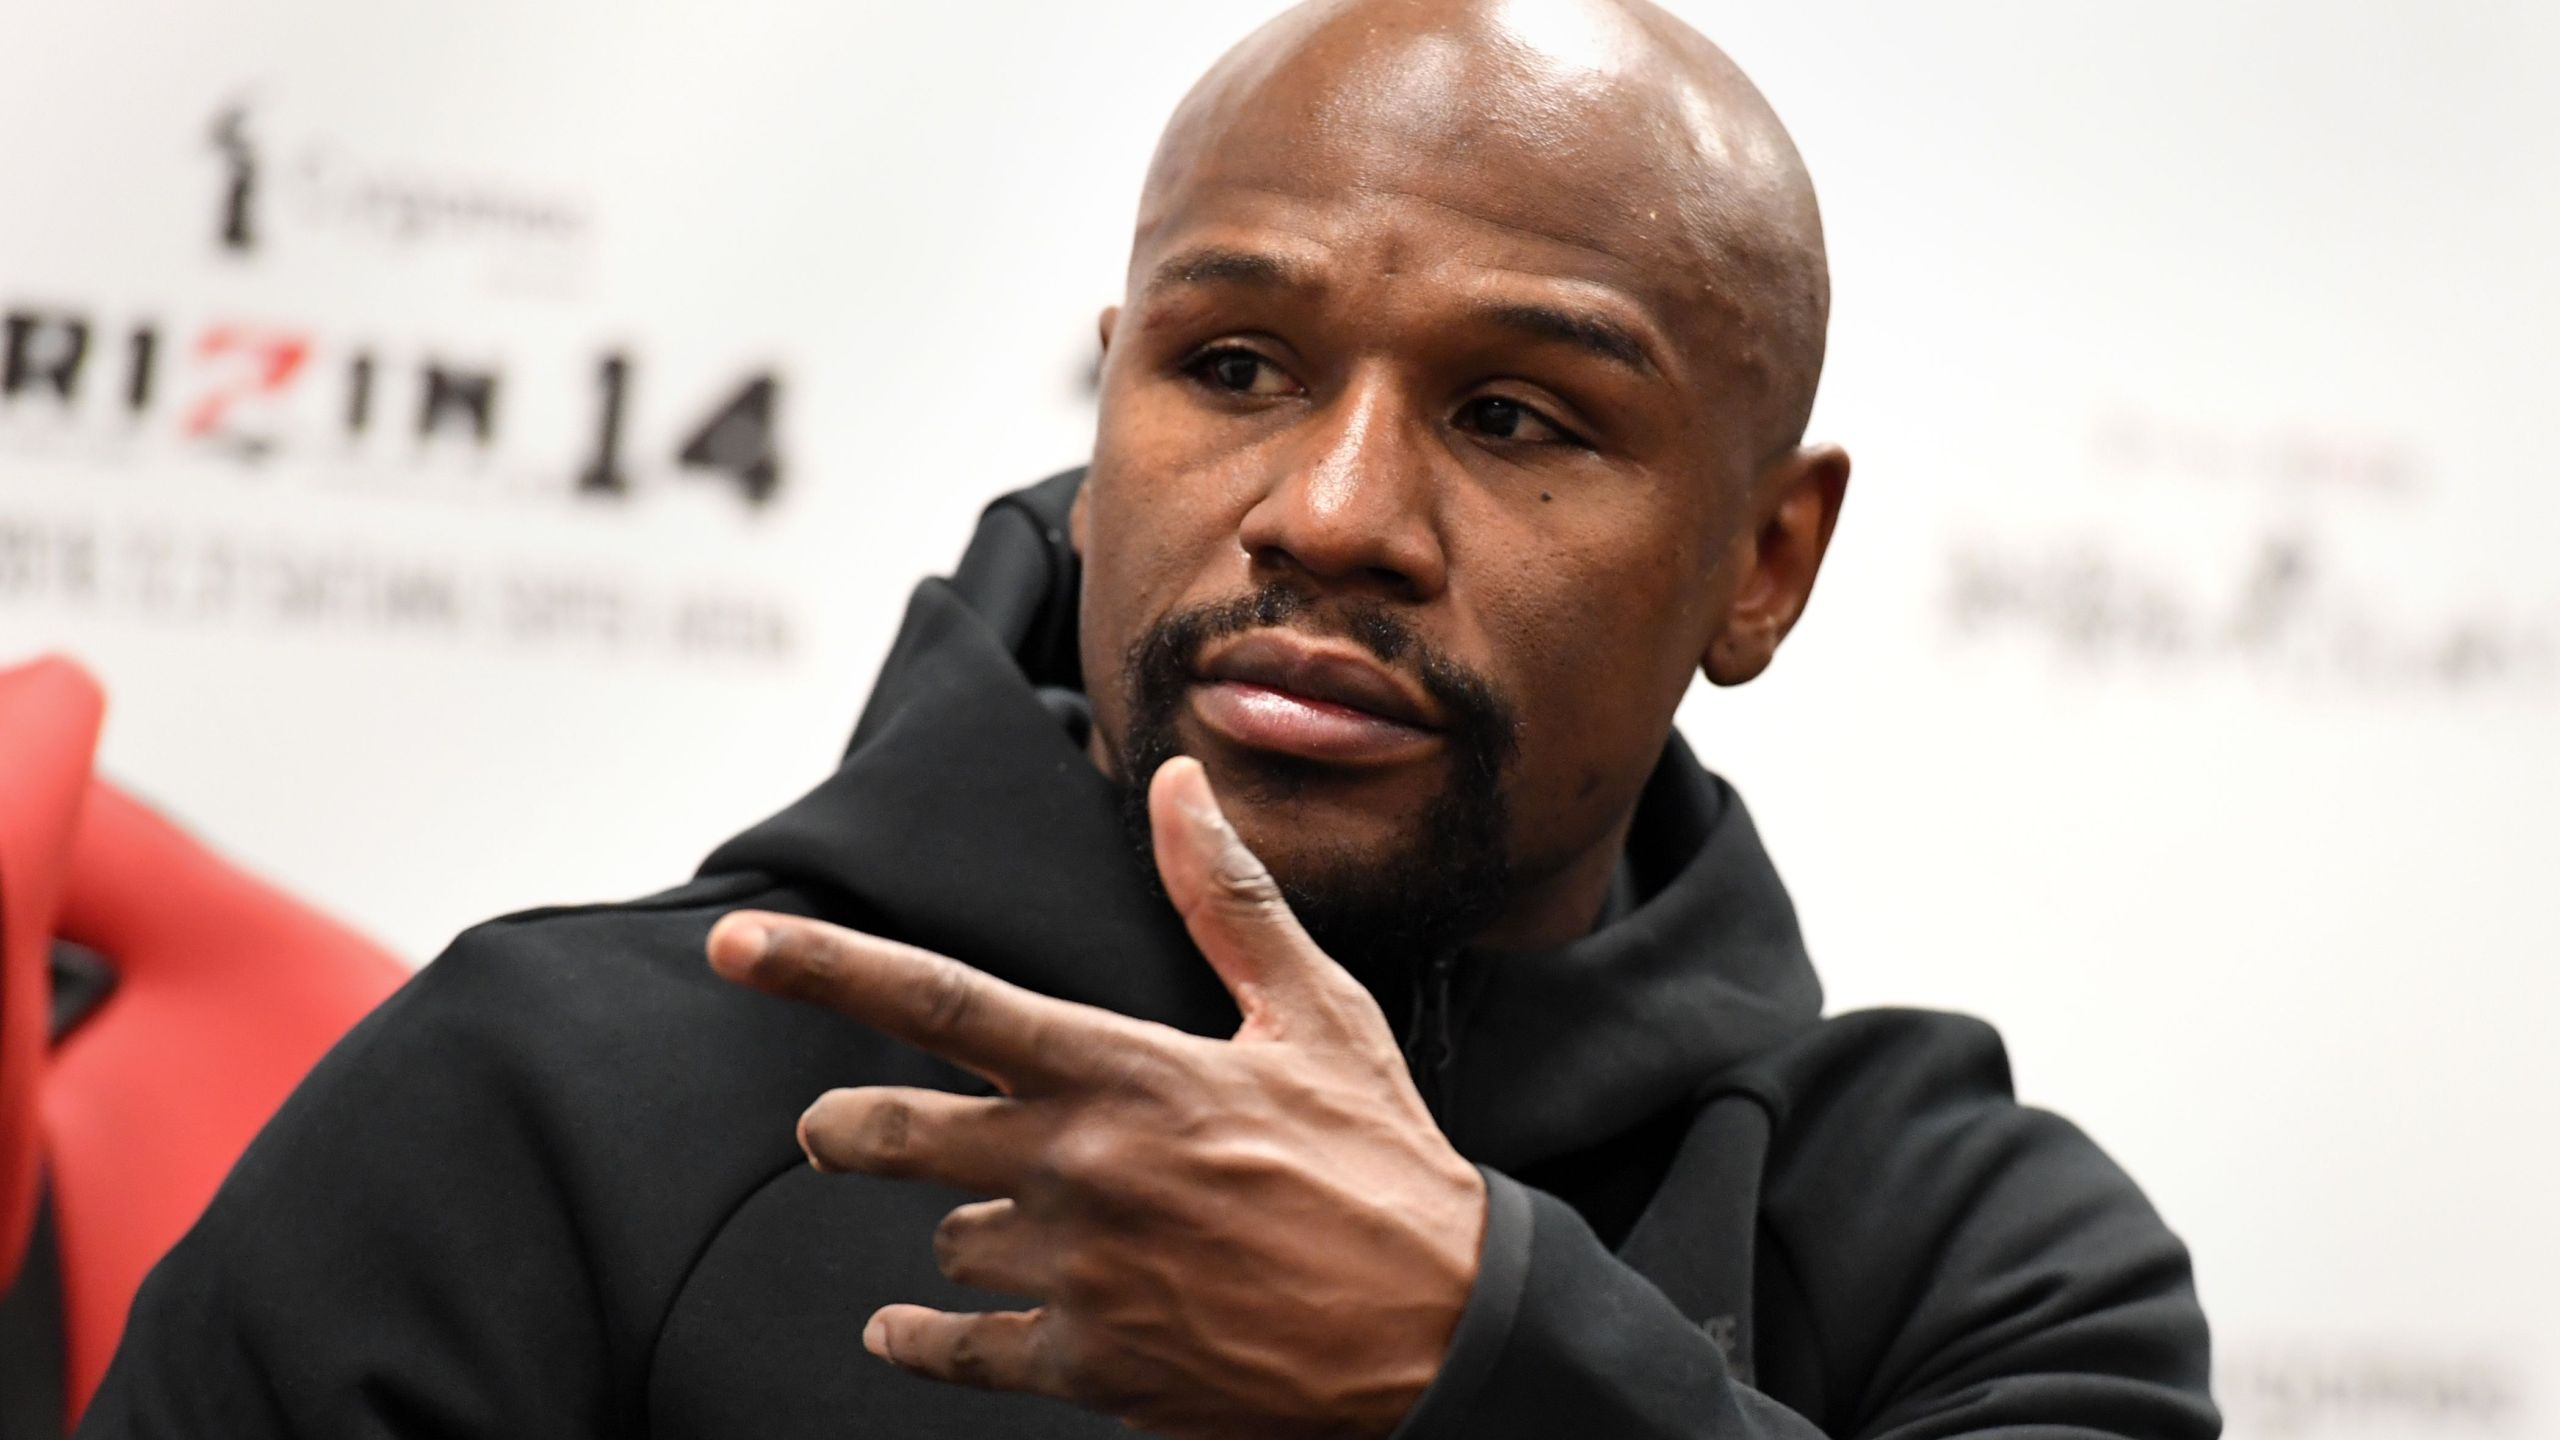 U.S. boxing legend Floyd Mayweather Jr gestures during his press conference after winning the exhibition fight against Kickboxer Tenshin Nasukawa on Dec. 31, 2018. (TOSHIFUMI KITAMURA/AFP via Getty Images)